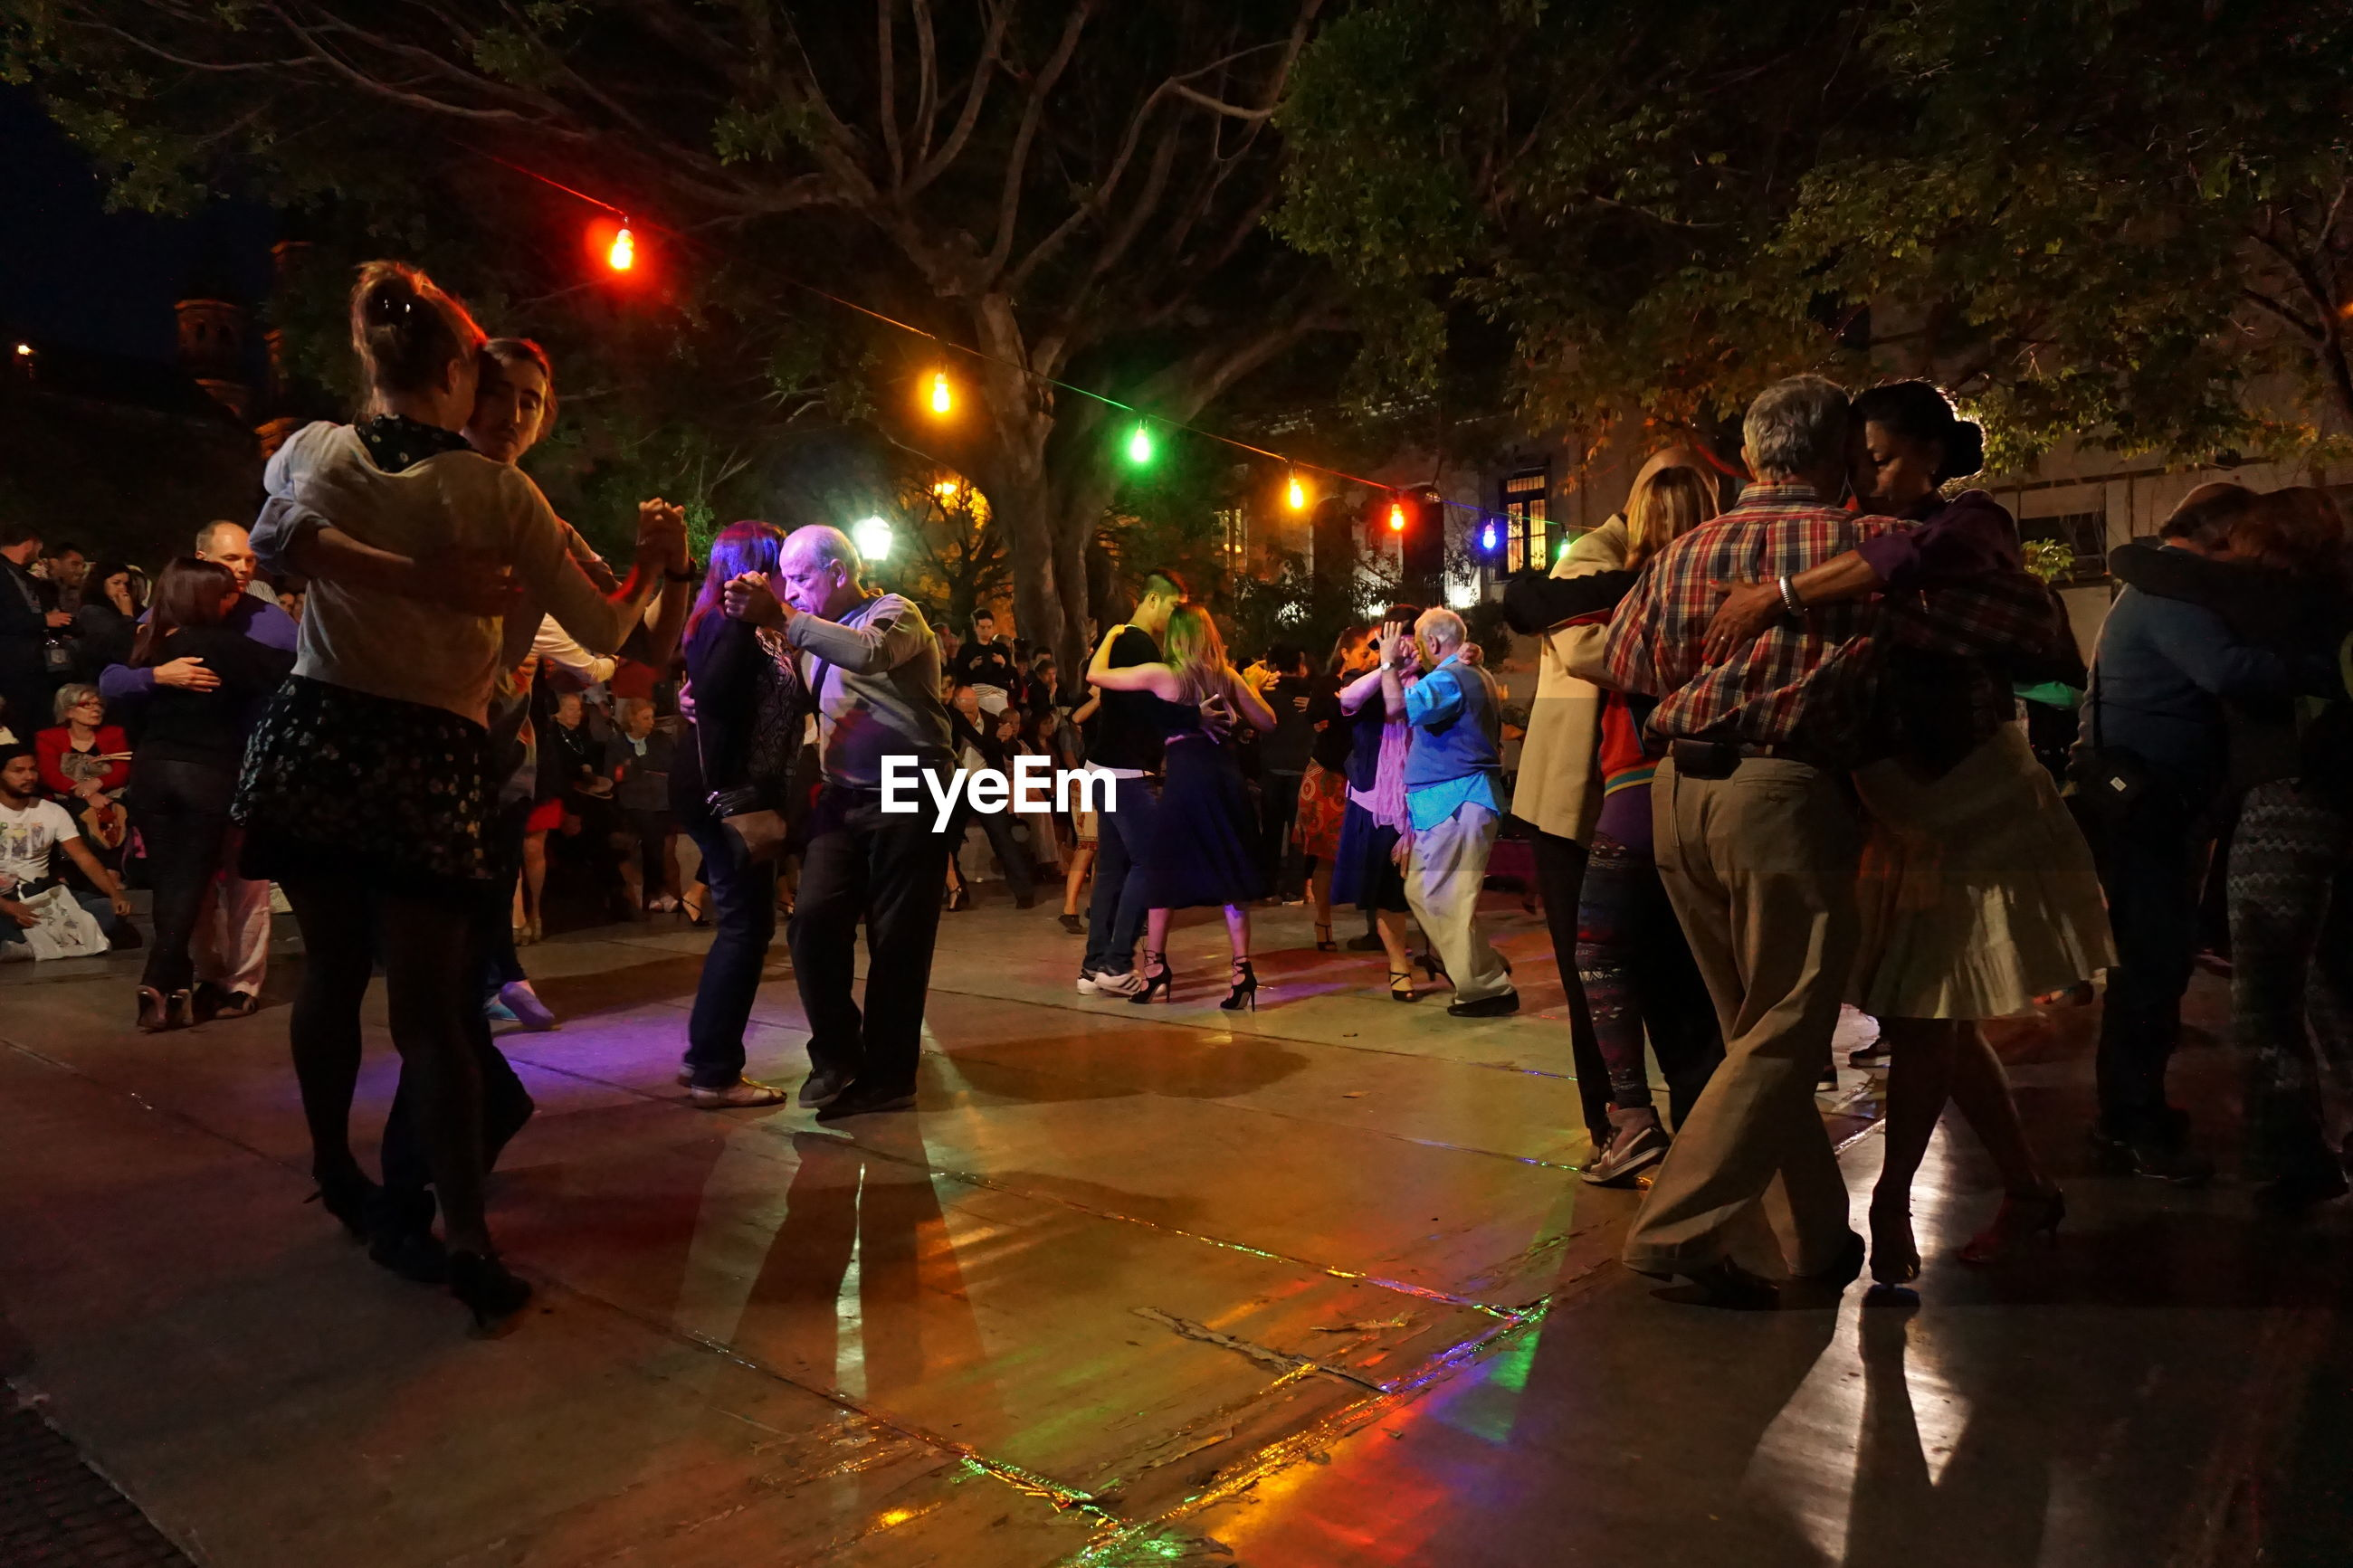 People tangoing during celebration at night